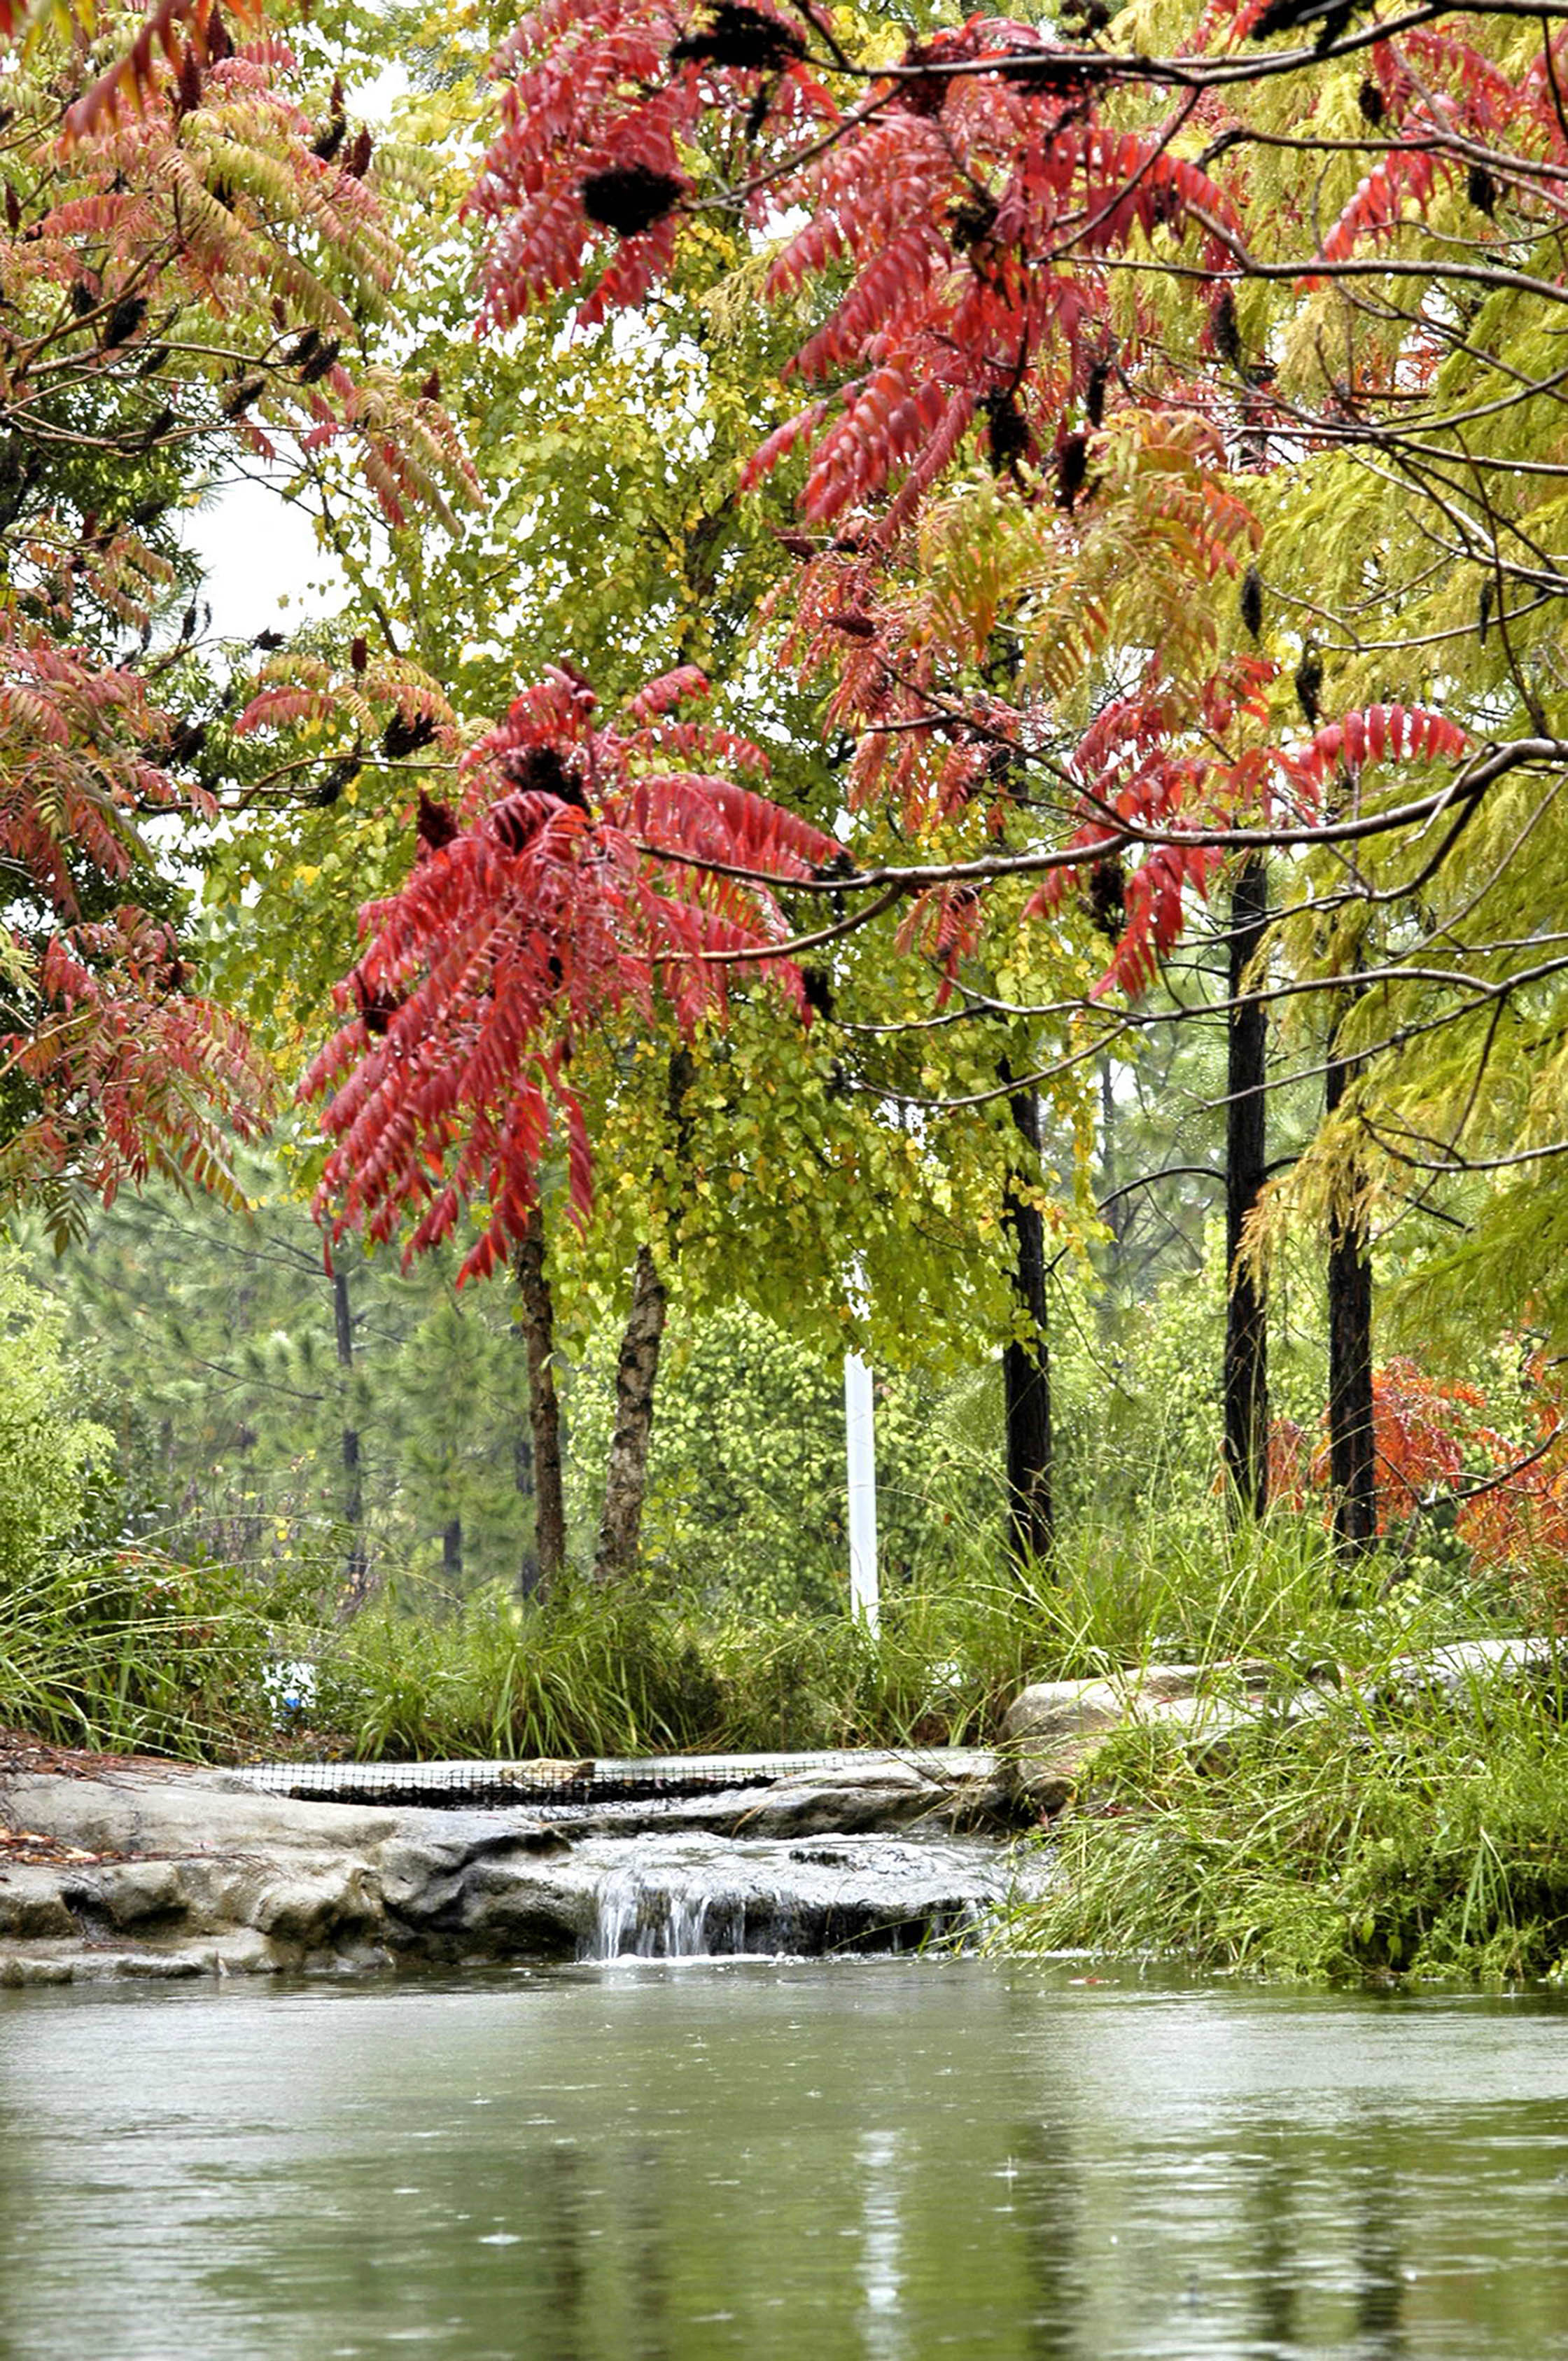 Of tourism gears up for second annual scenic fall foliage trail